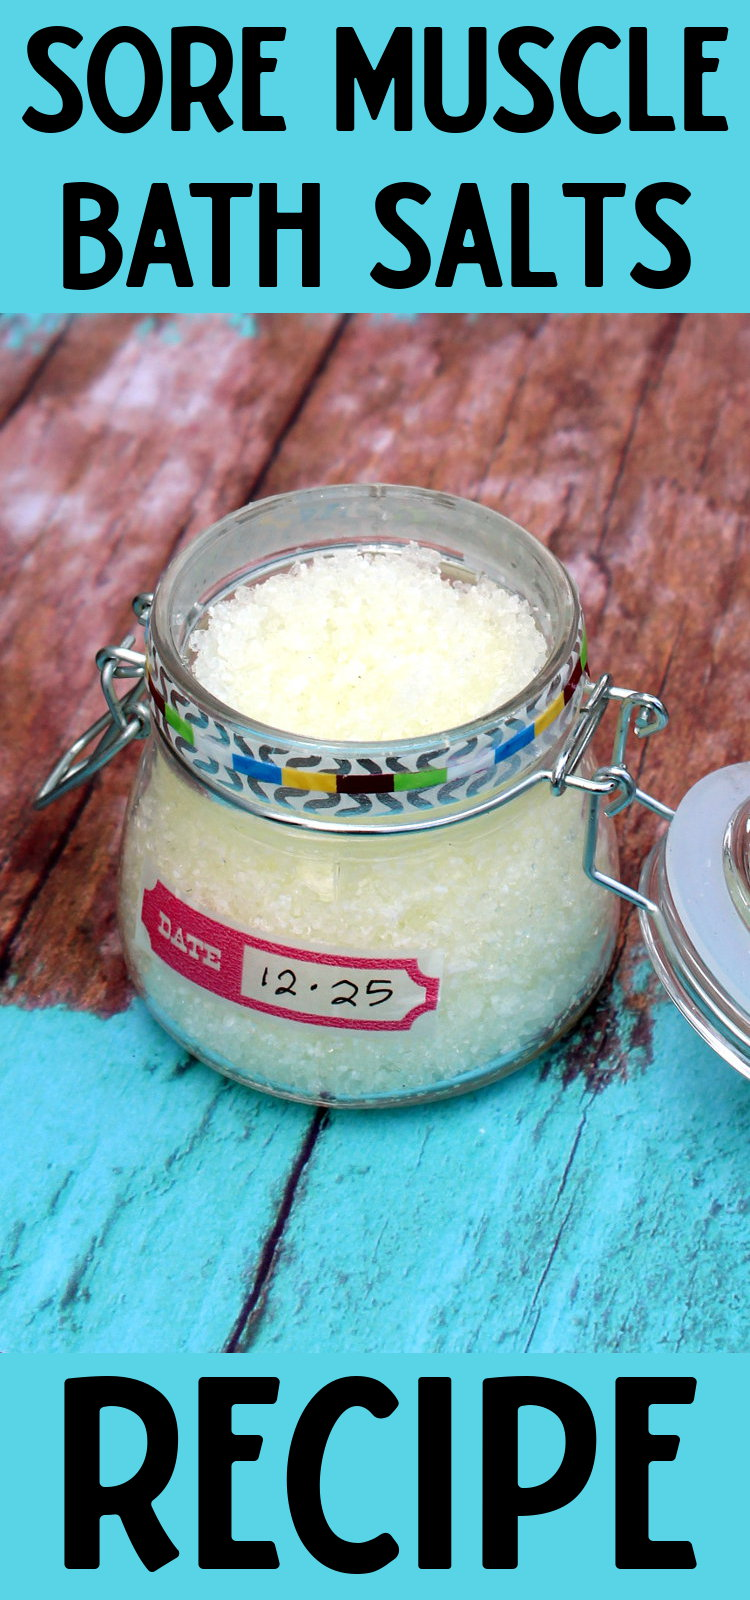 Pain Relief Bath Salts Recipe! Don't let sore muscles slow you down this busy holiday season! Enjoy a nice long soak in these pain relief bath salts instead. (And sneak in some quiet time away from the kids and the hustle and bustle of the holidays.) #diy #recipe #bathsalts #painrelief #homeremedies #natural